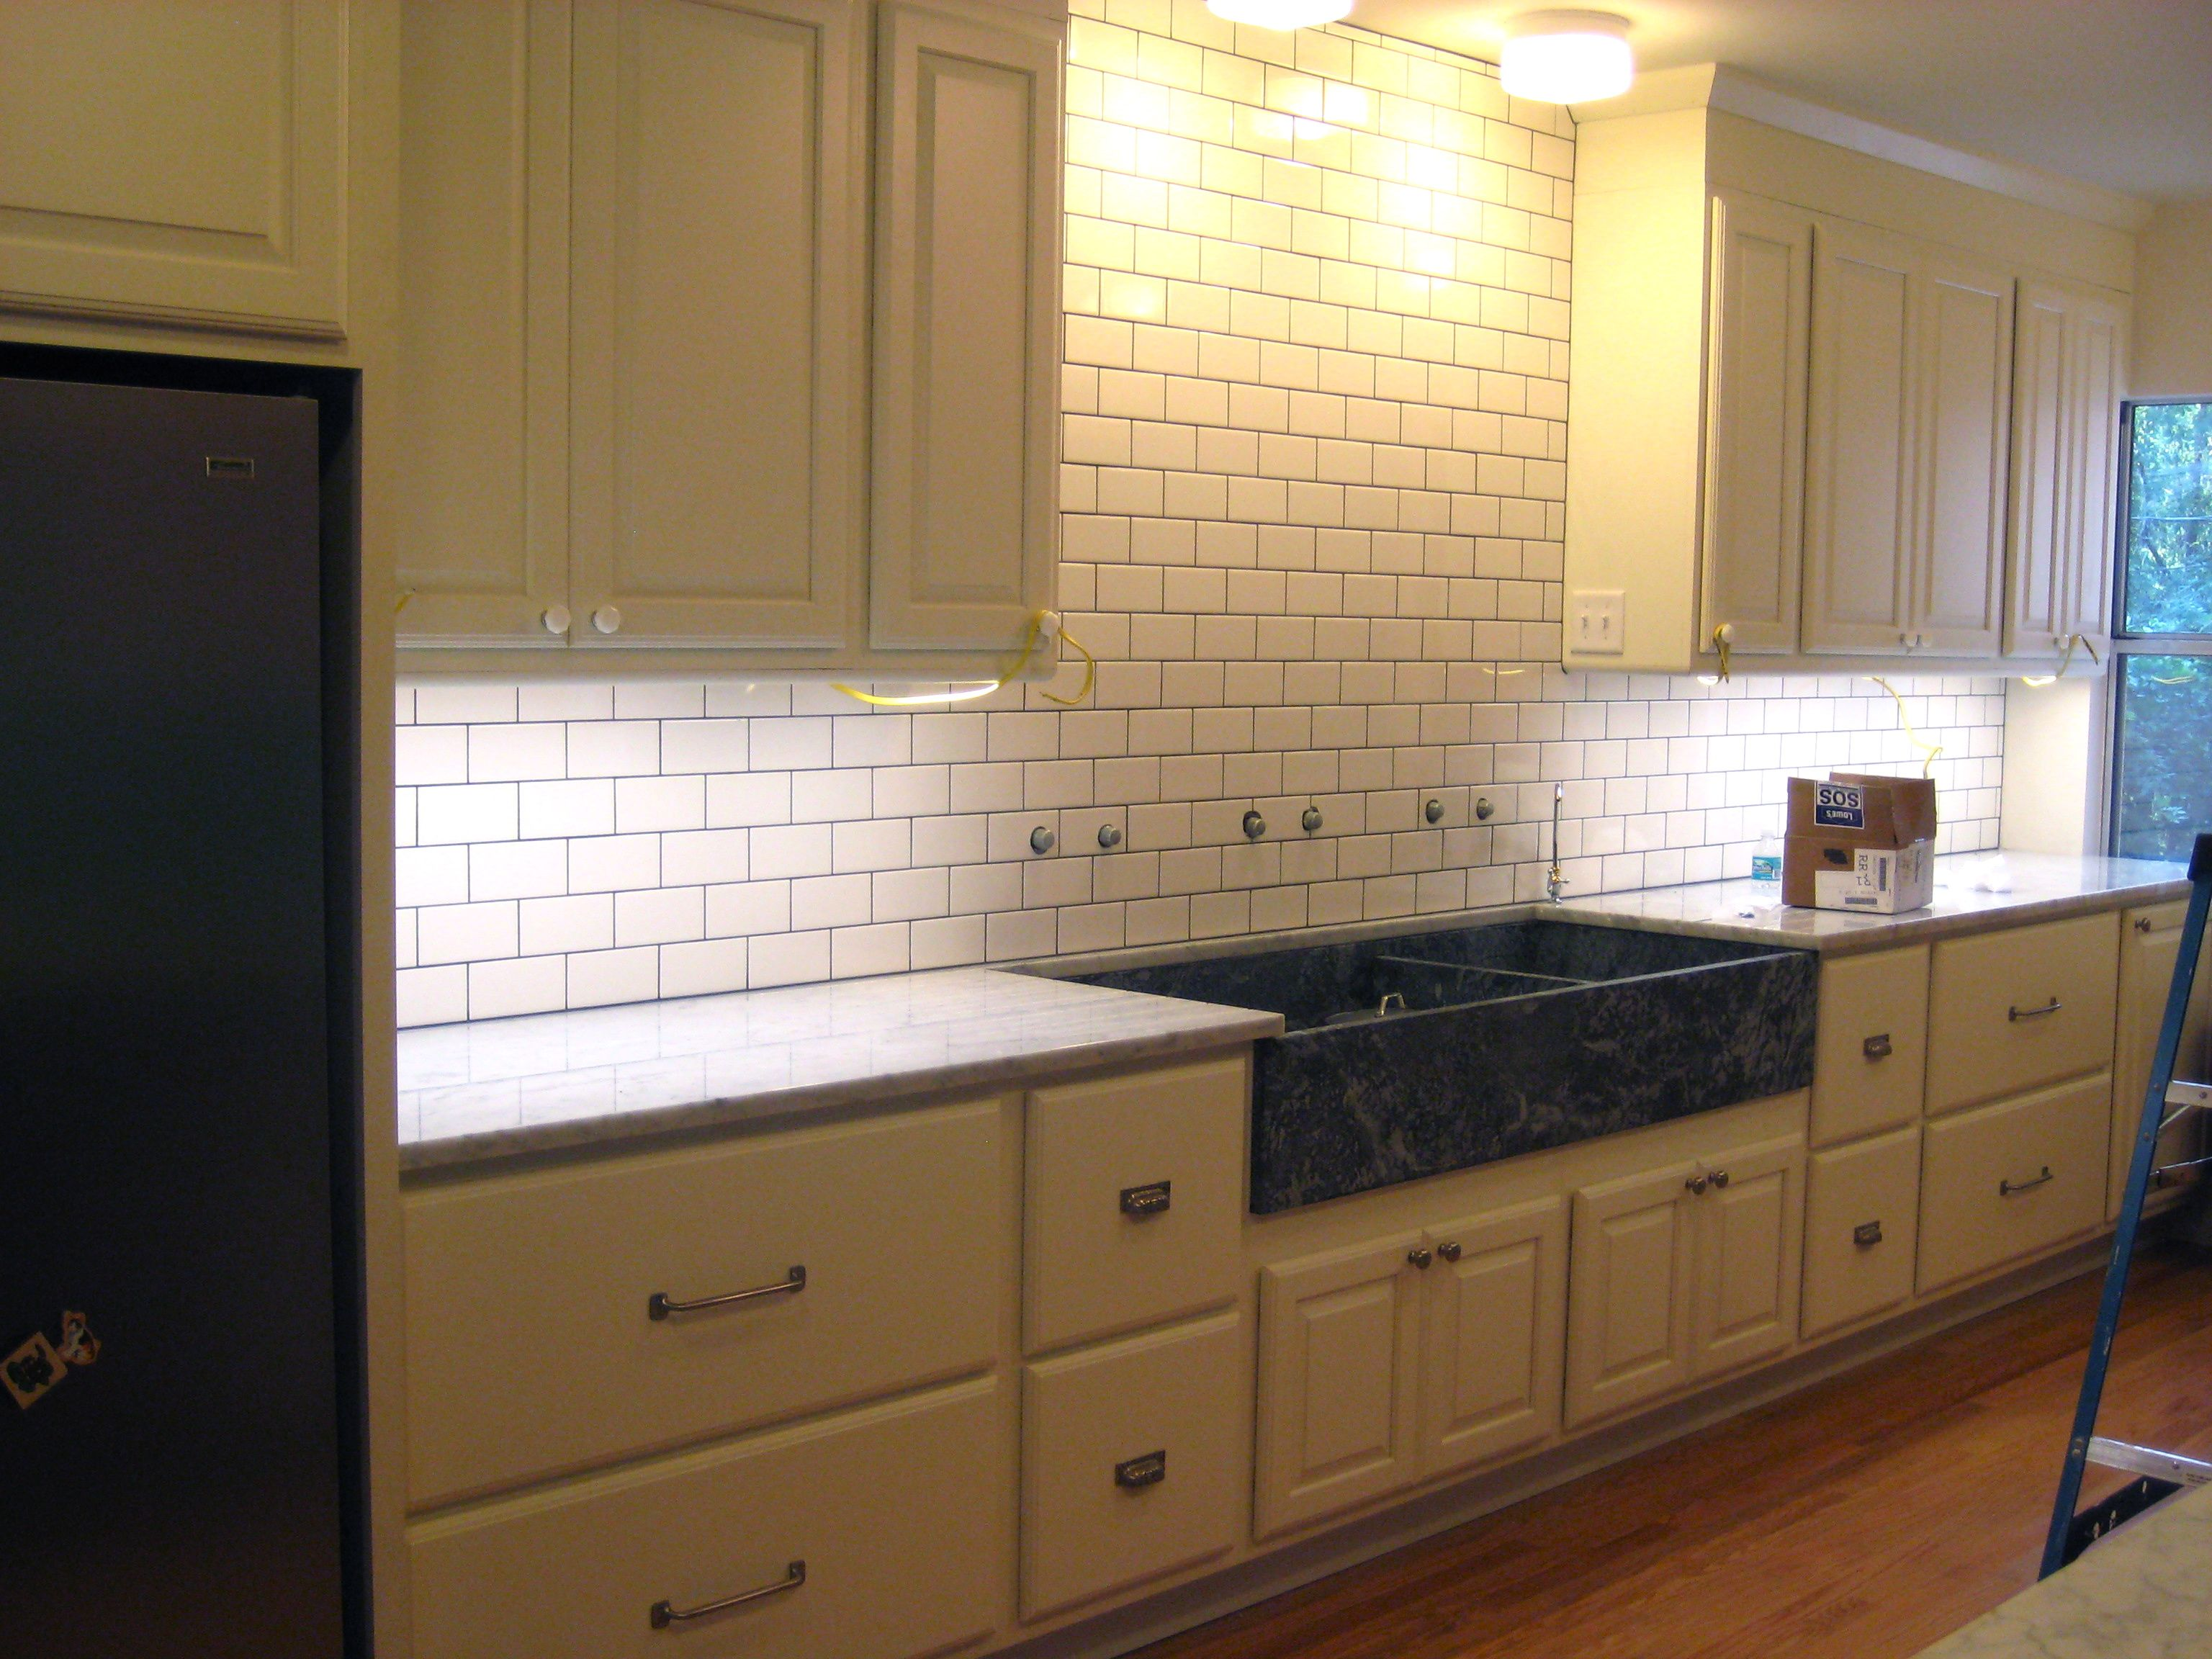 Subway tile backsplash with expresso cabinets white subway tile subway tile backsplash with expresso cabinets white subway tile gray grout cream cabinets dailygadgetfo Choice Image